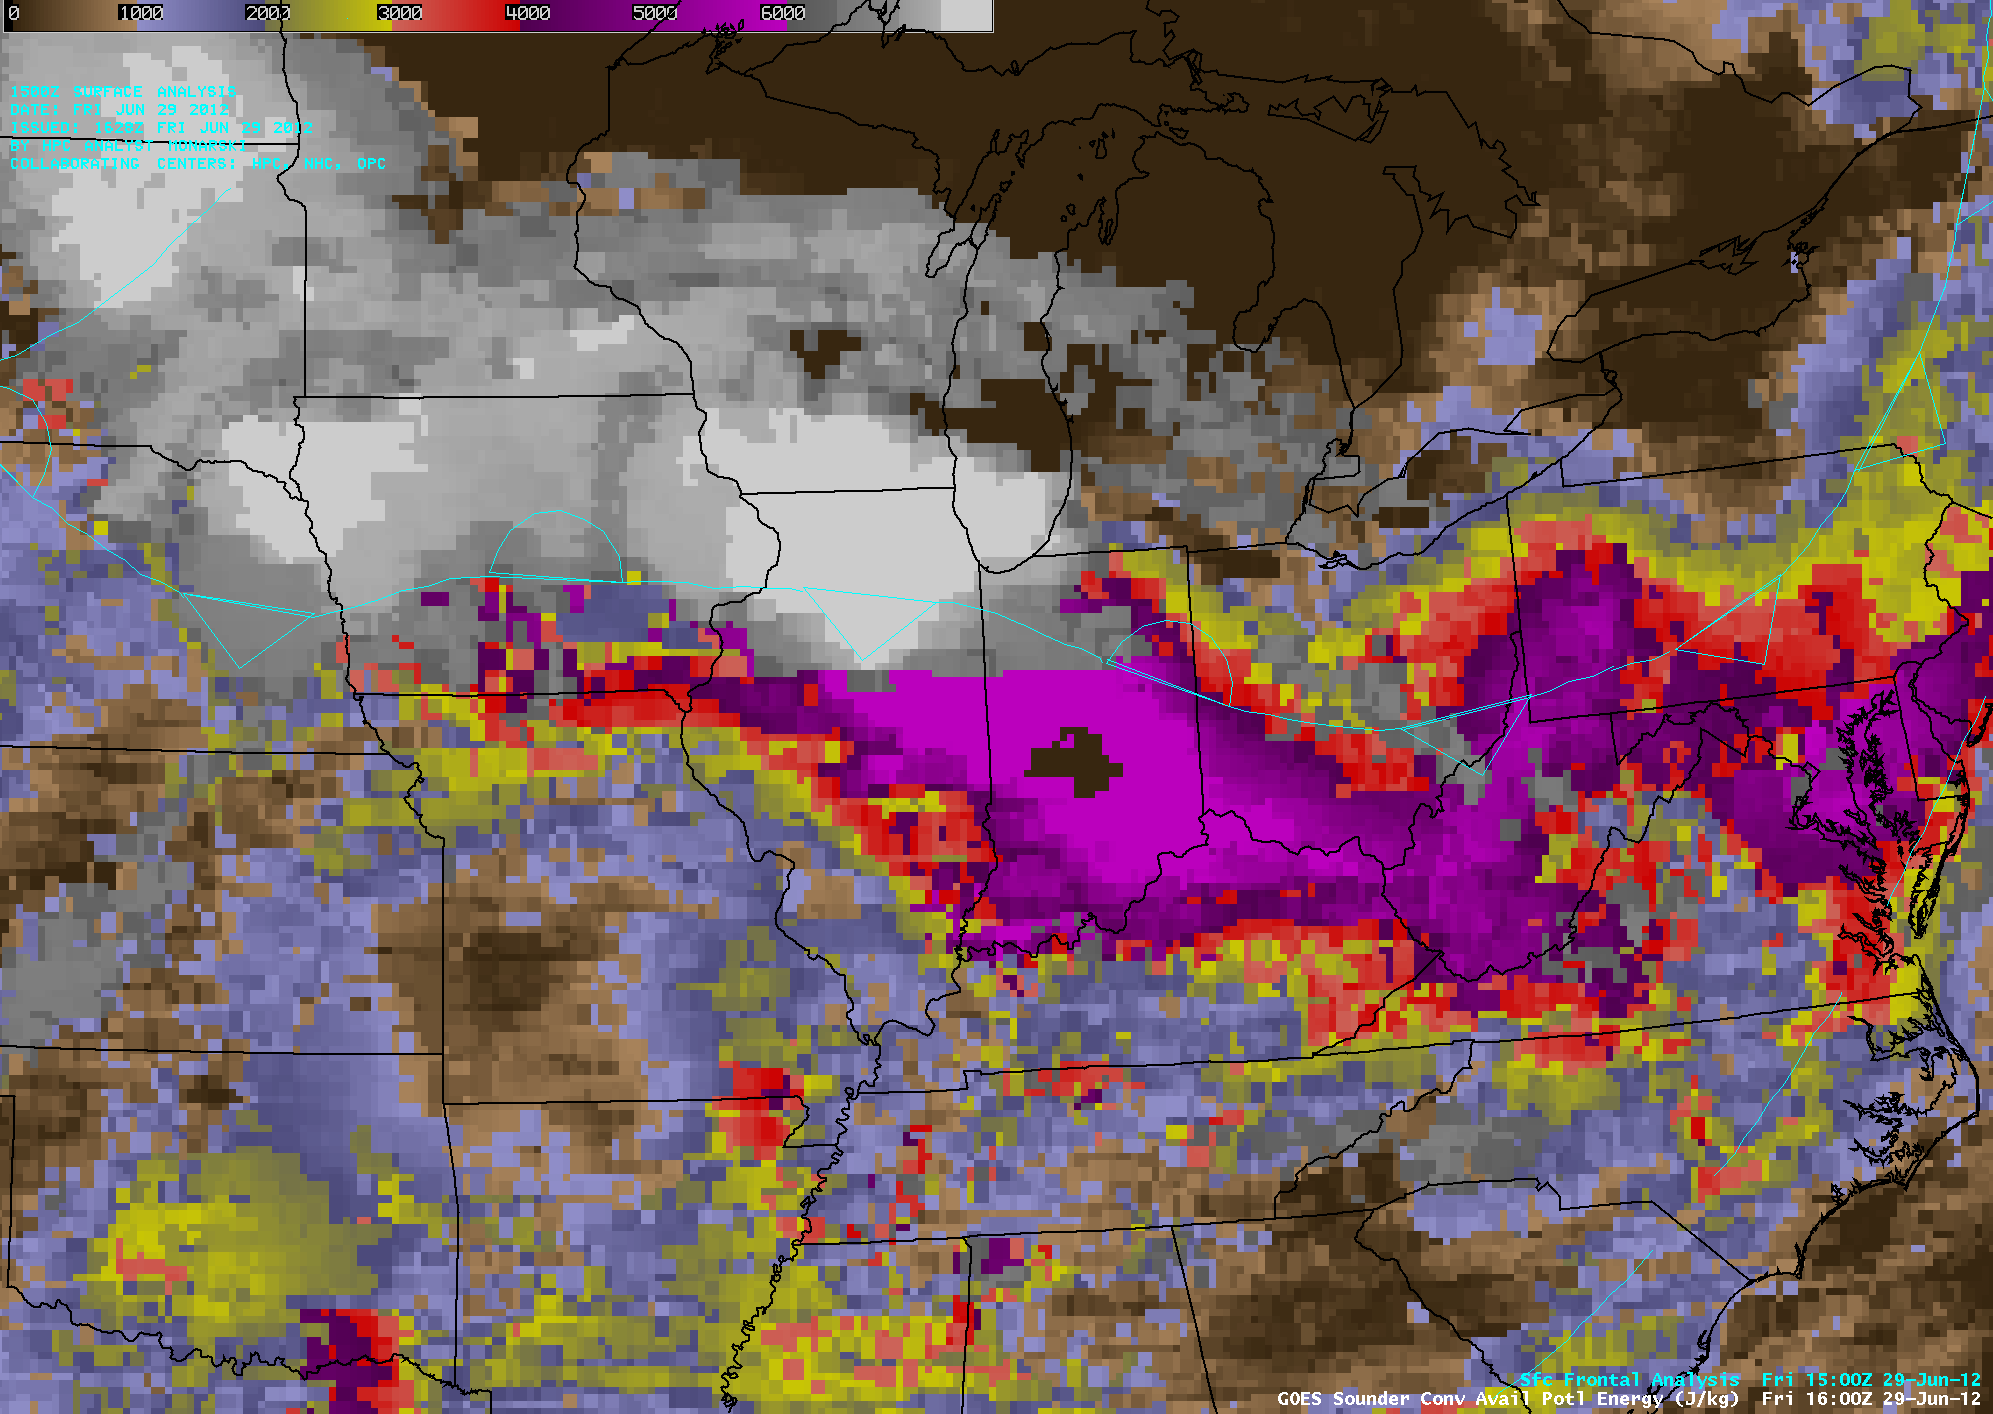 GOES-13 sounder Convective Available Potential Energy (CAPE) derived product (click image to play animation)